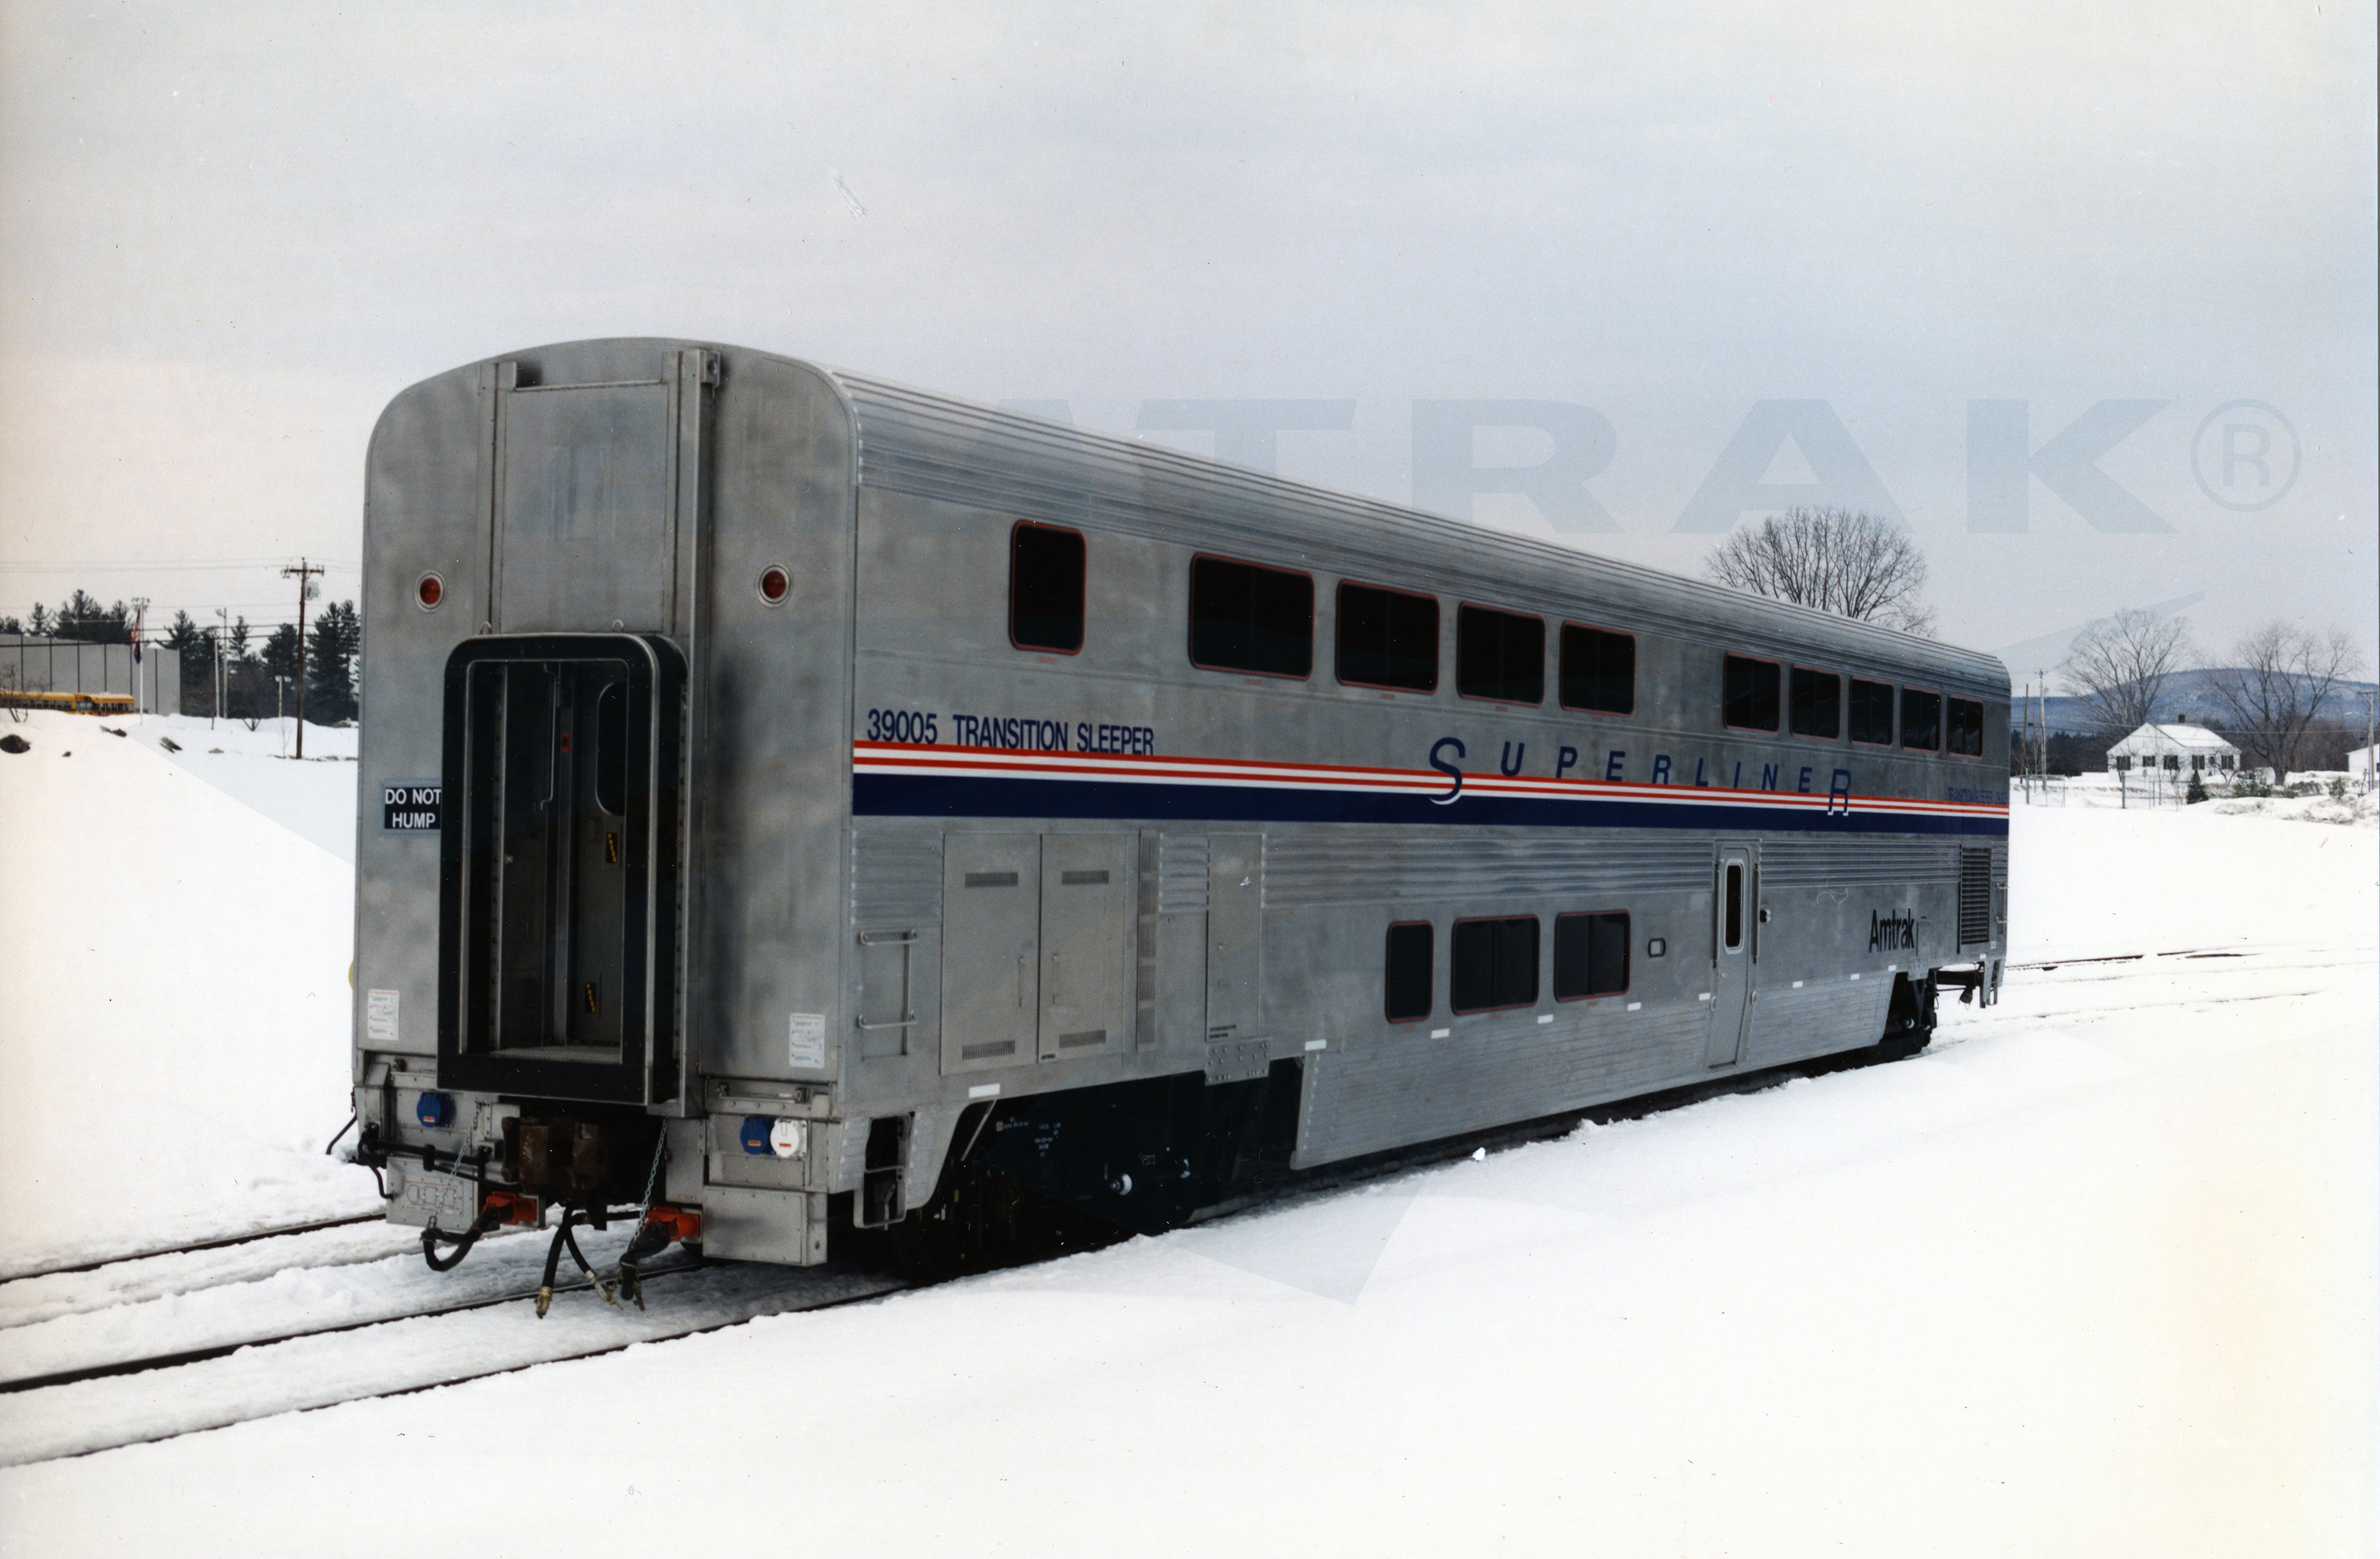 Capital Coast Kitchens Transition Sleeper No 39005 In The Snow 1990s Amtrak